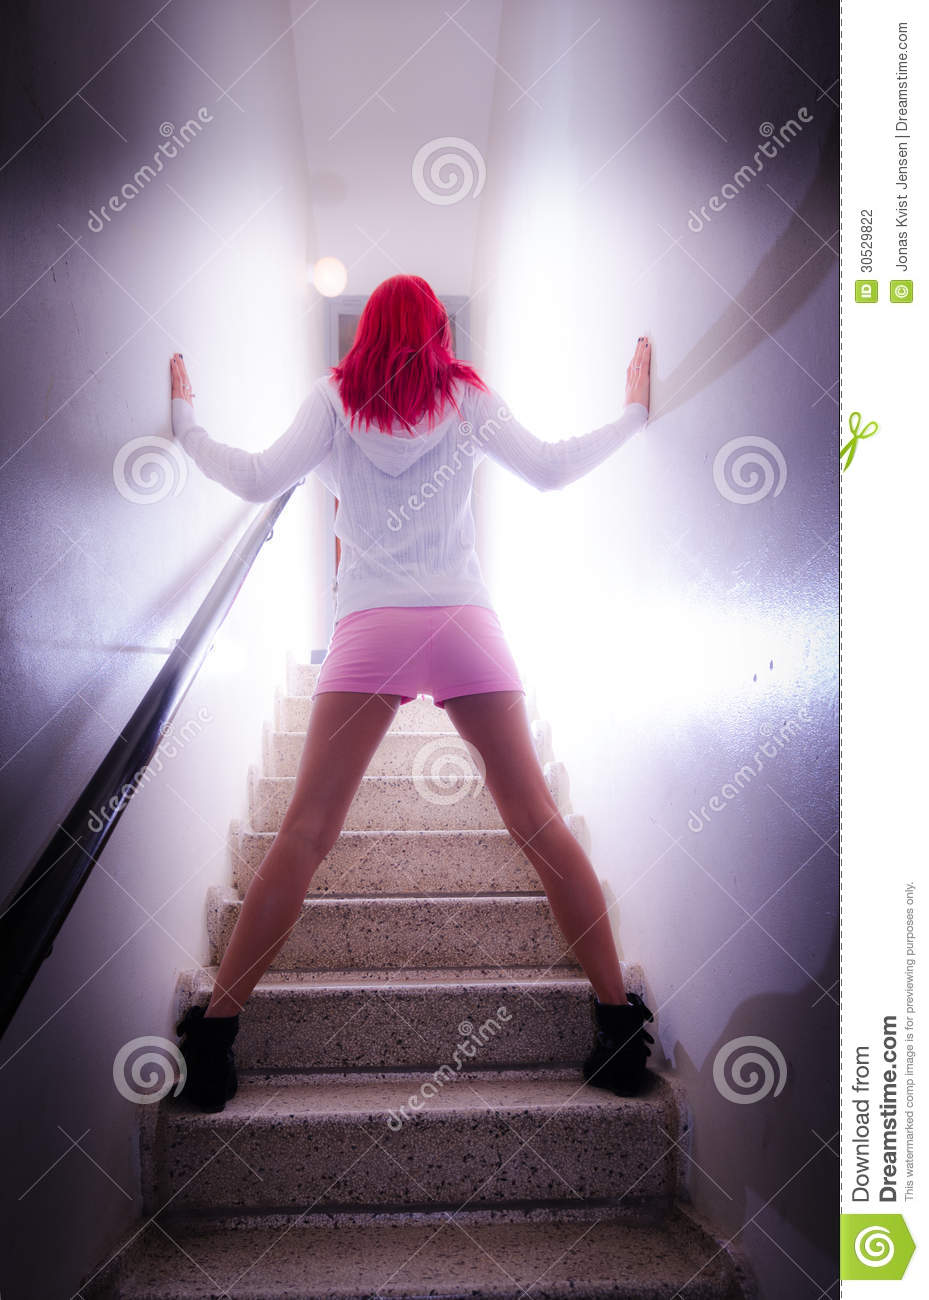 Hot Girl On Stairs With Back Turned Stock Photography ...  Hot Girl On Sta...